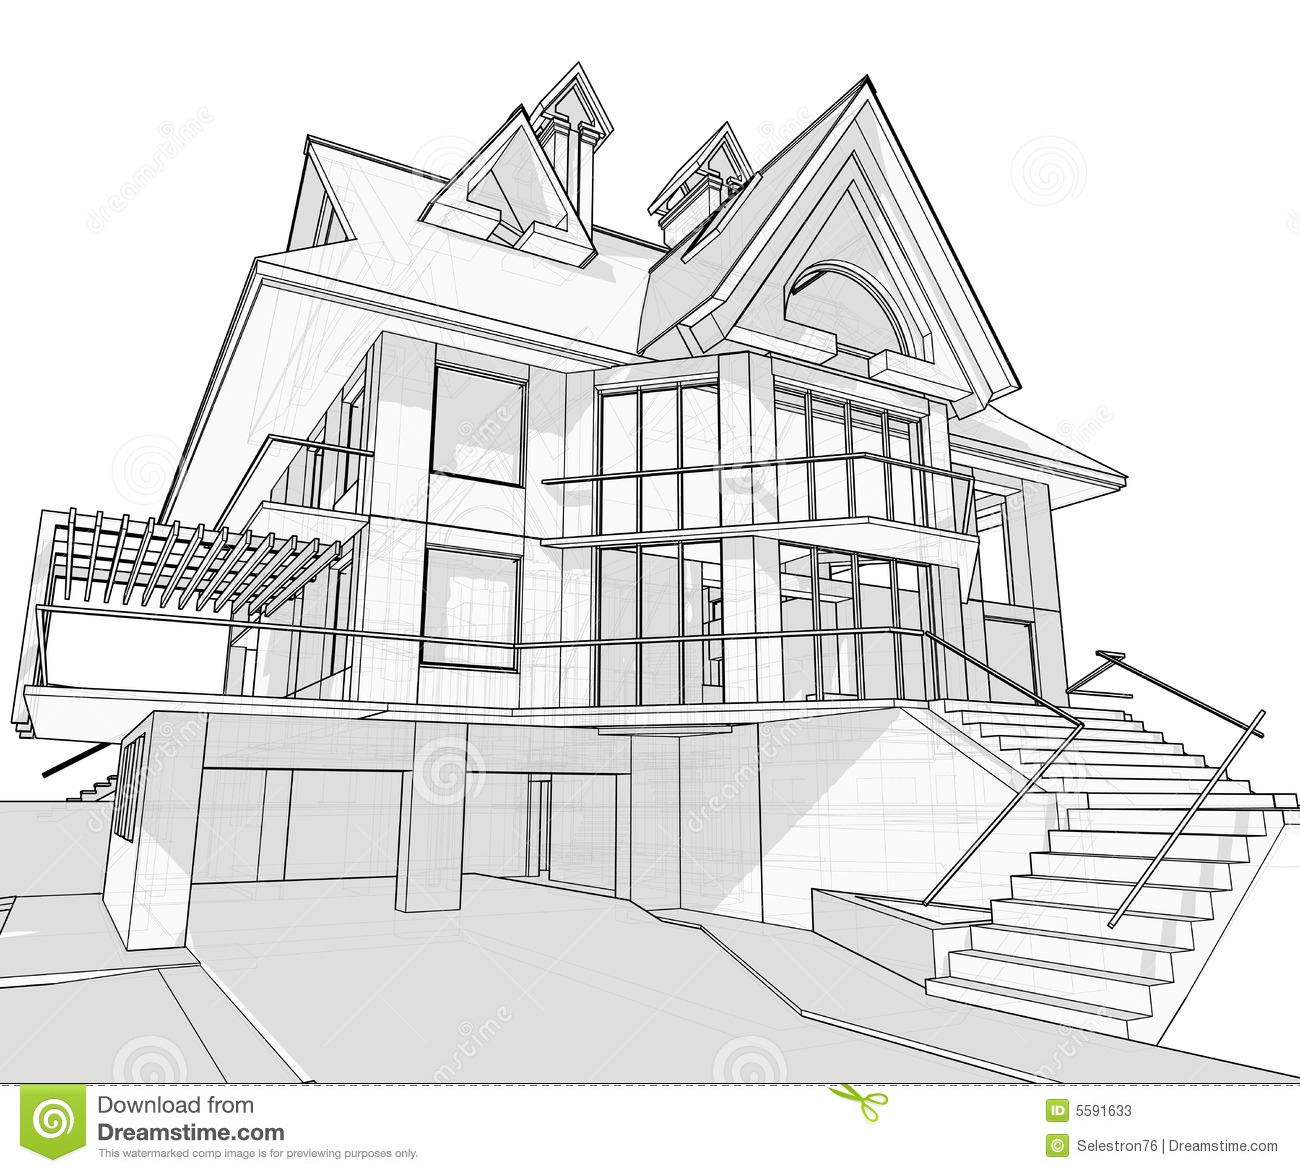 House architecture blueprint stock vector illustration for House sketches from photos